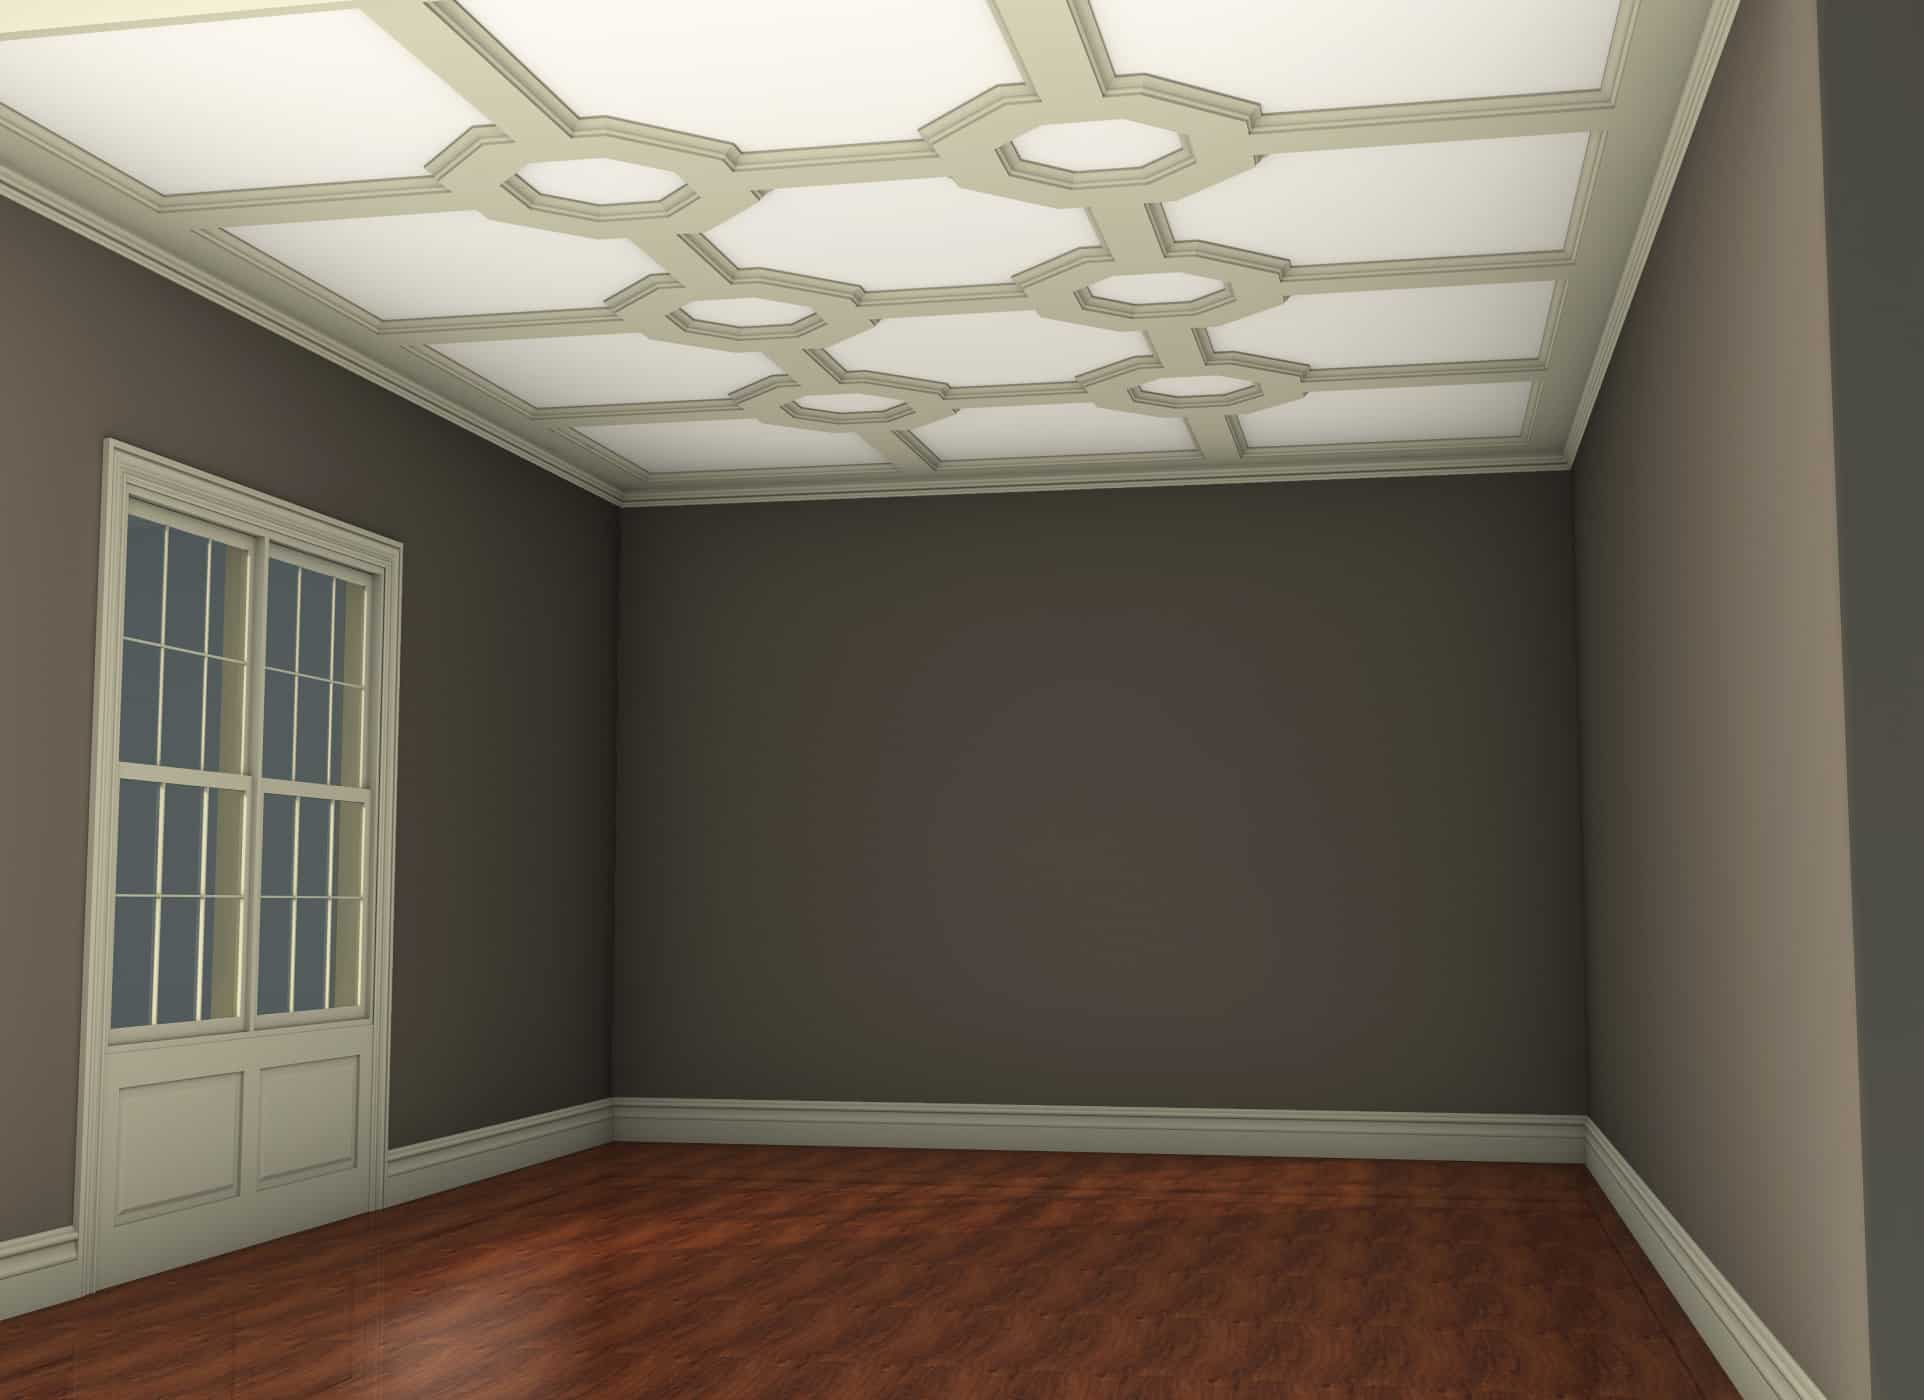 ceiling designs pictures ceiling ideas images drawings